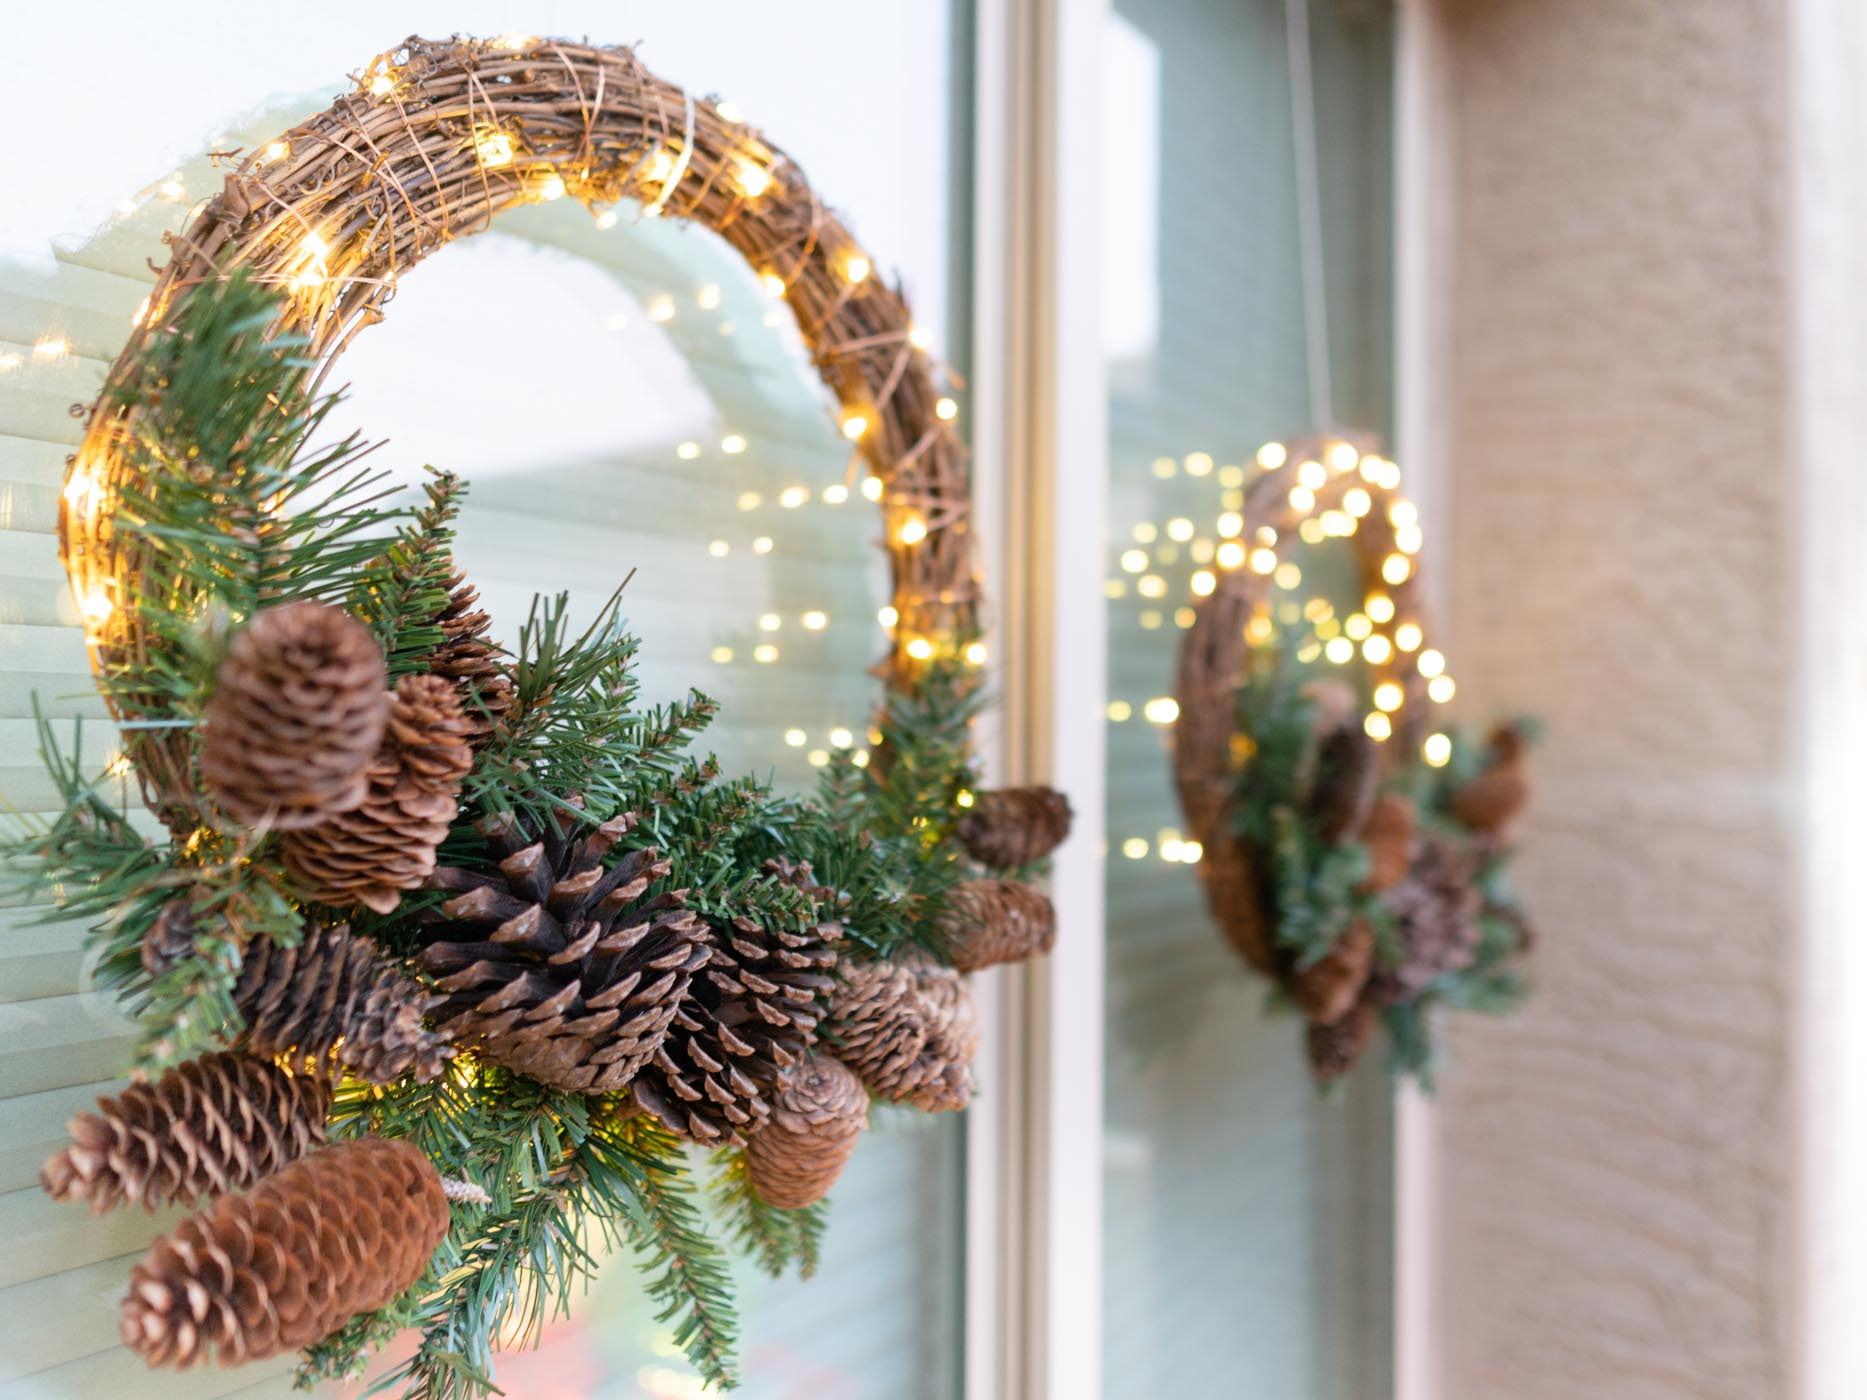 Neutral and traditional holiday decor